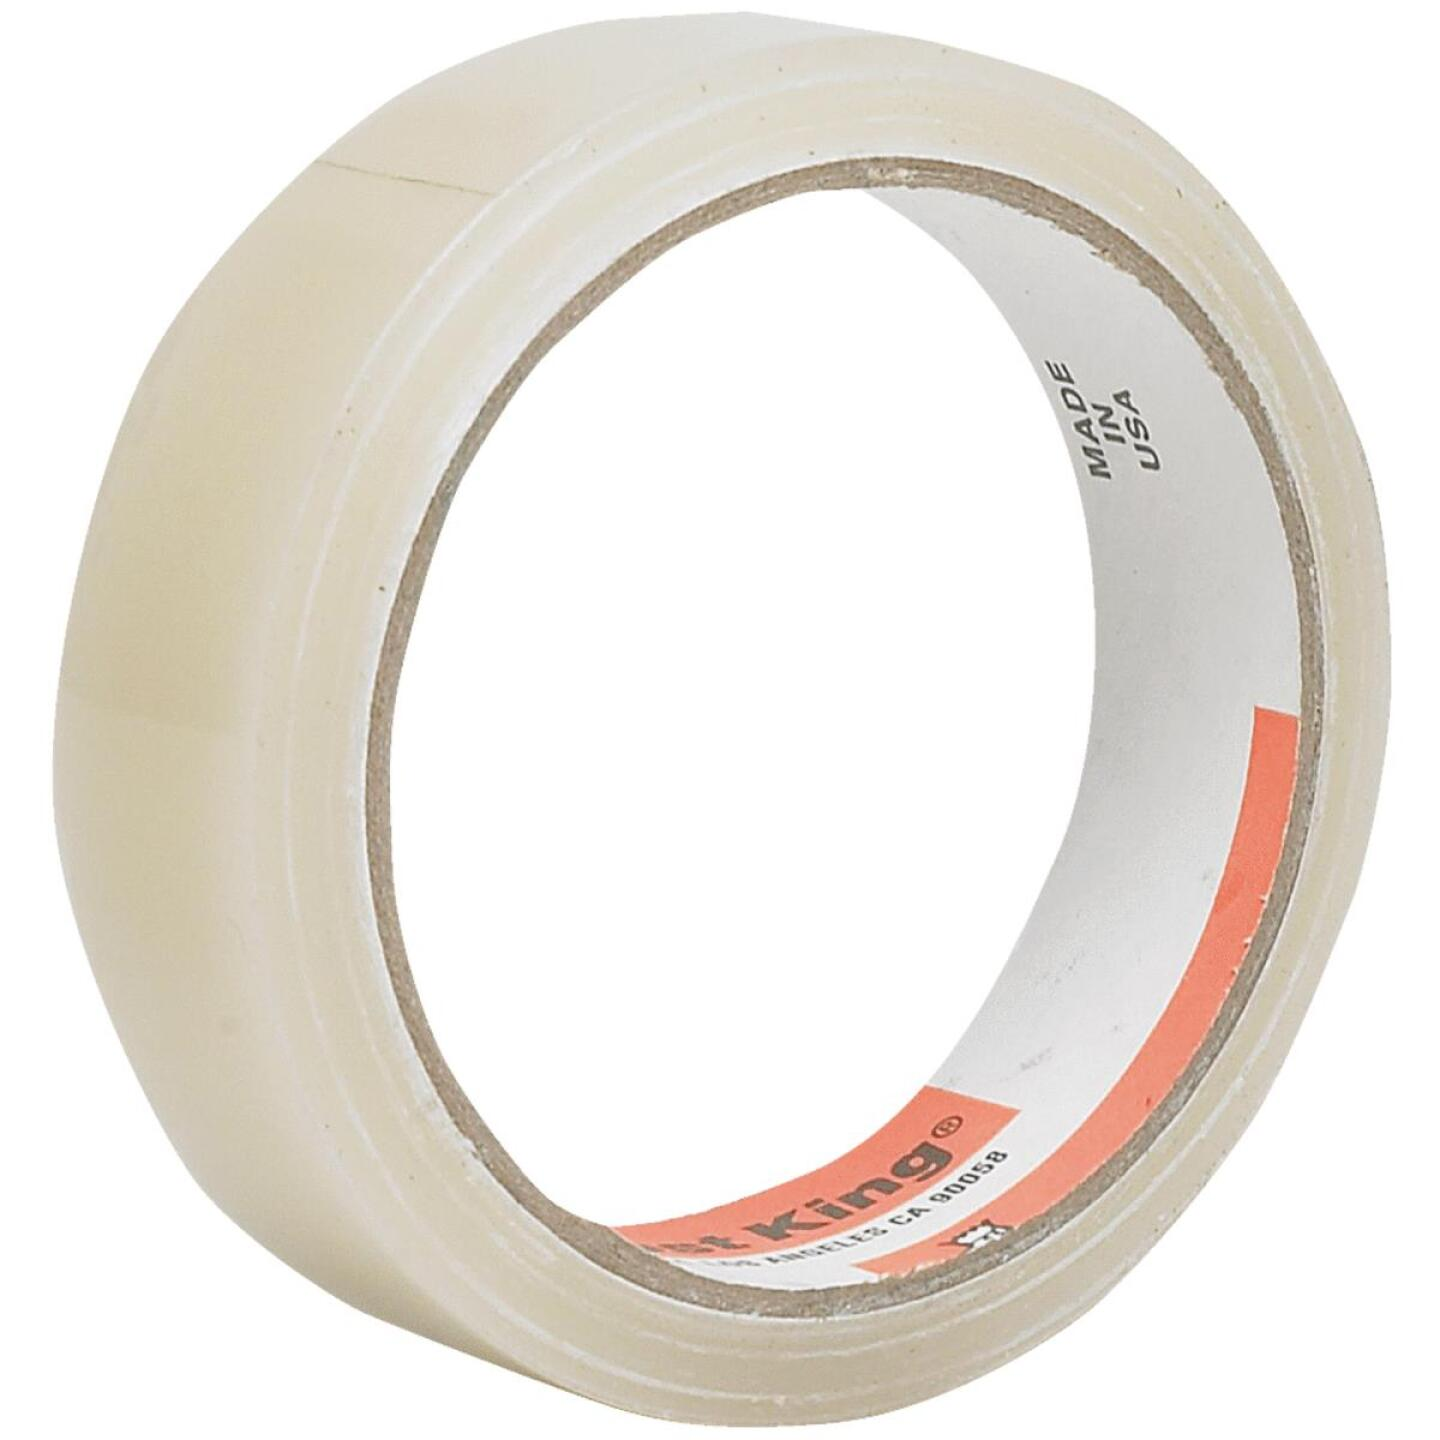 Do it 1 In. x 45 Ft. Clear Weatherseal Tape Image 1